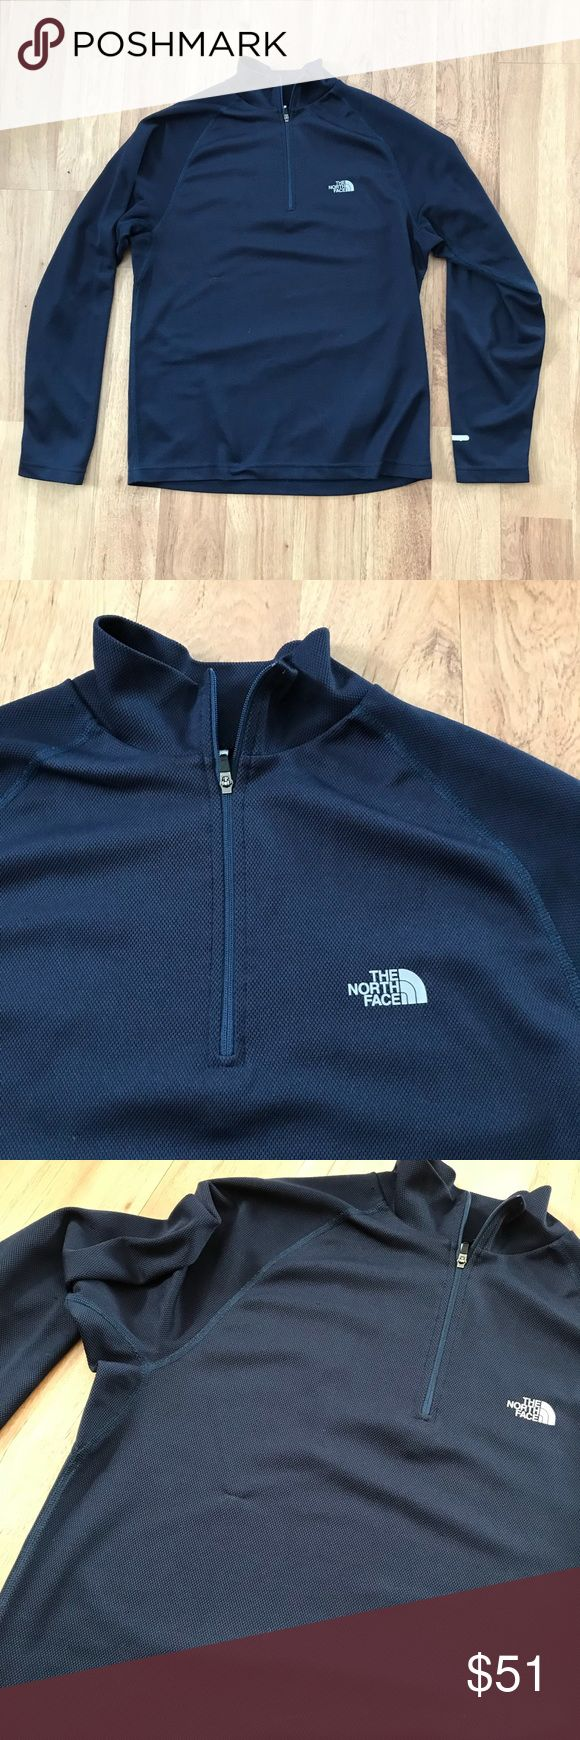 The North Face Men's Navy Quarter Zip Jacket Small thread pull on front ⚜️I love receiving offers through the offer button!⚜️ Good condition, as seen in pictures! Fast same or next day shipping!📨 Open to offers but I don't negotiate in the comments so please use the offer button😊 Check out the rest of my closet for more Adidas, Lululemon, Tory Burch, Urban Outfitters, Free People, Anthropologie, Victoria's Secret, Sam Edelman, Topshop, Asos, Revolve, Brandy Melville, Zara, and American…